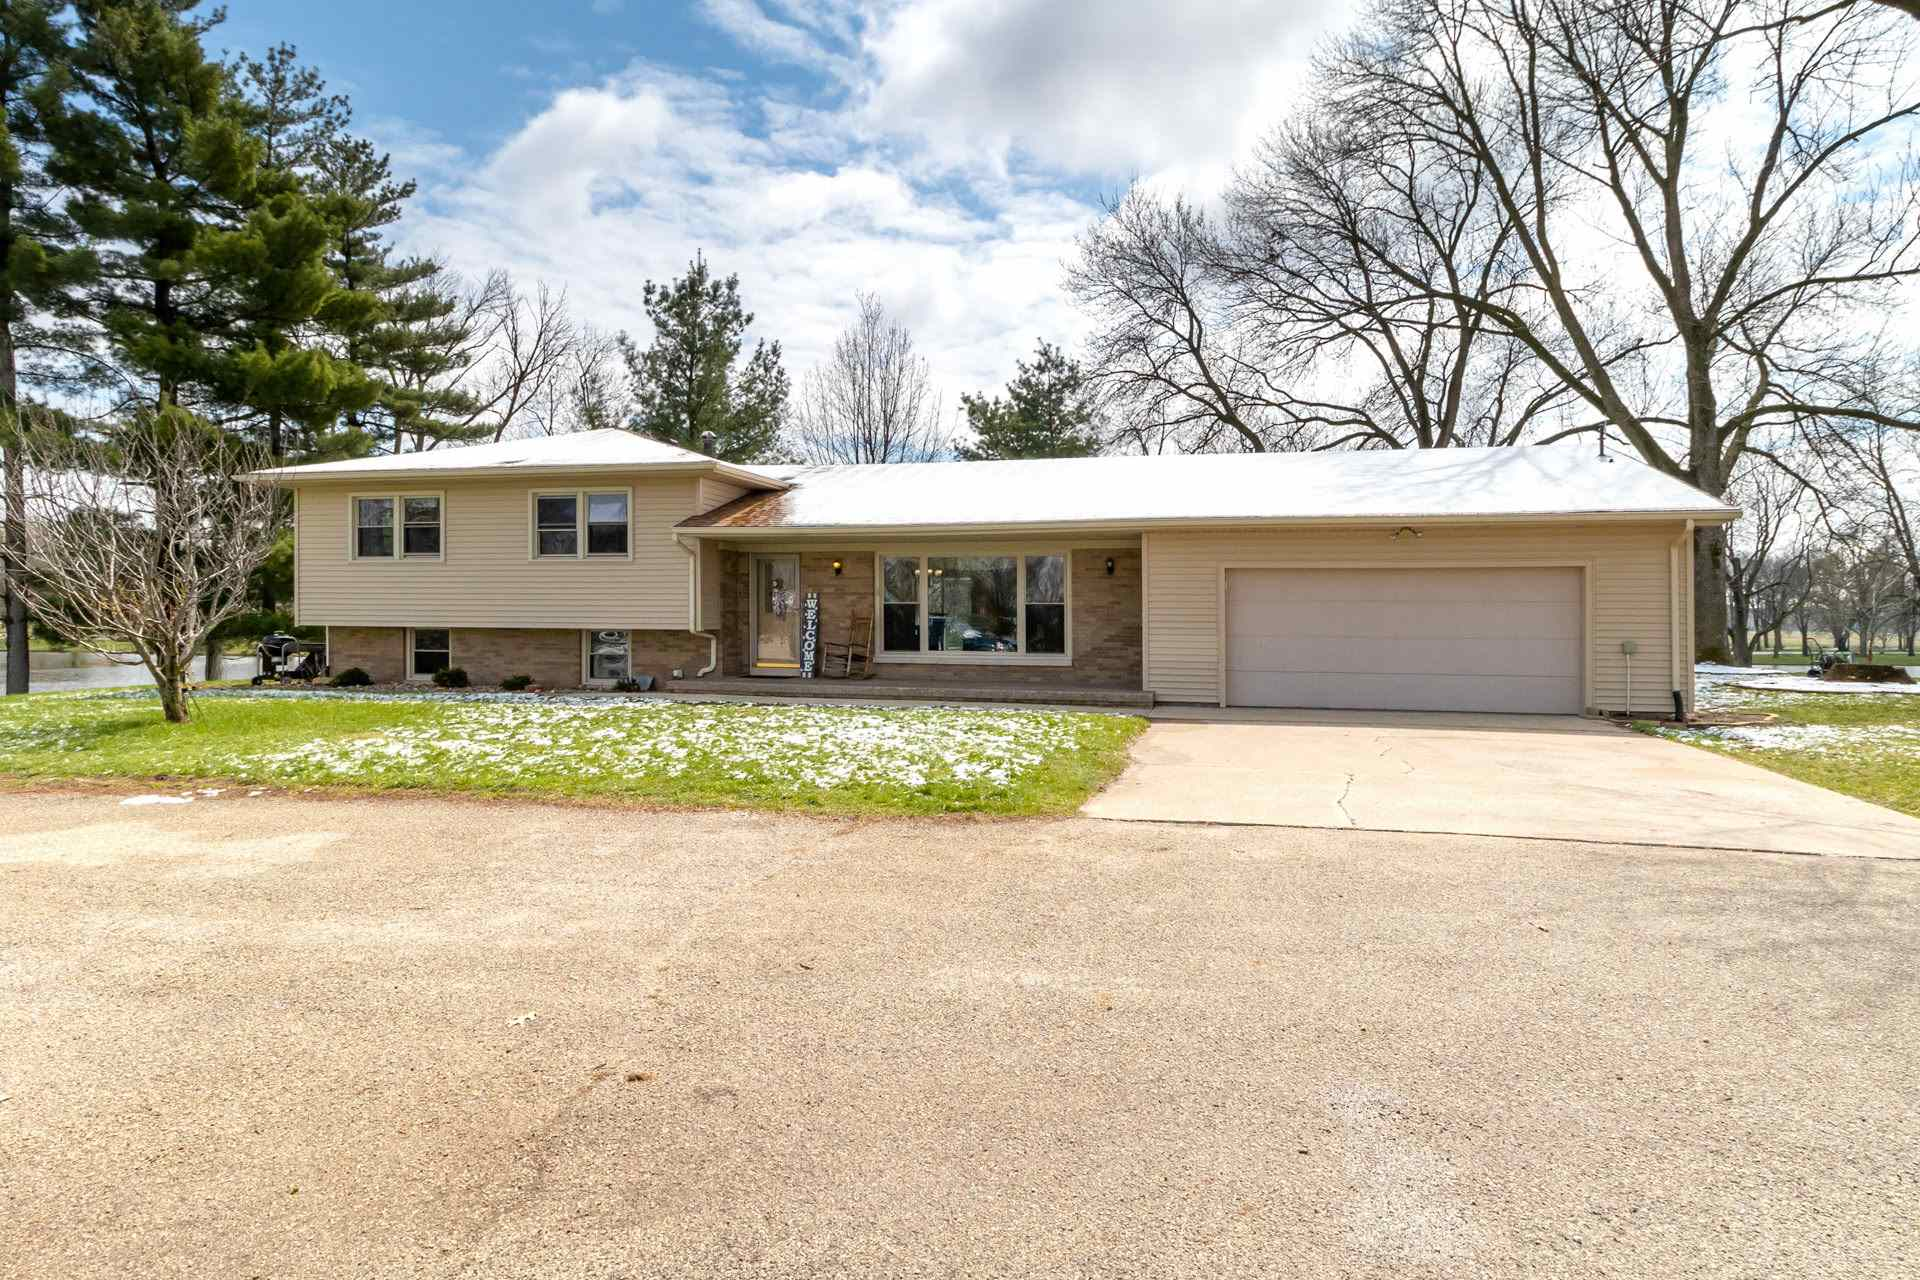 29400 34TH Property Photo - Hillsdale, IL real estate listing